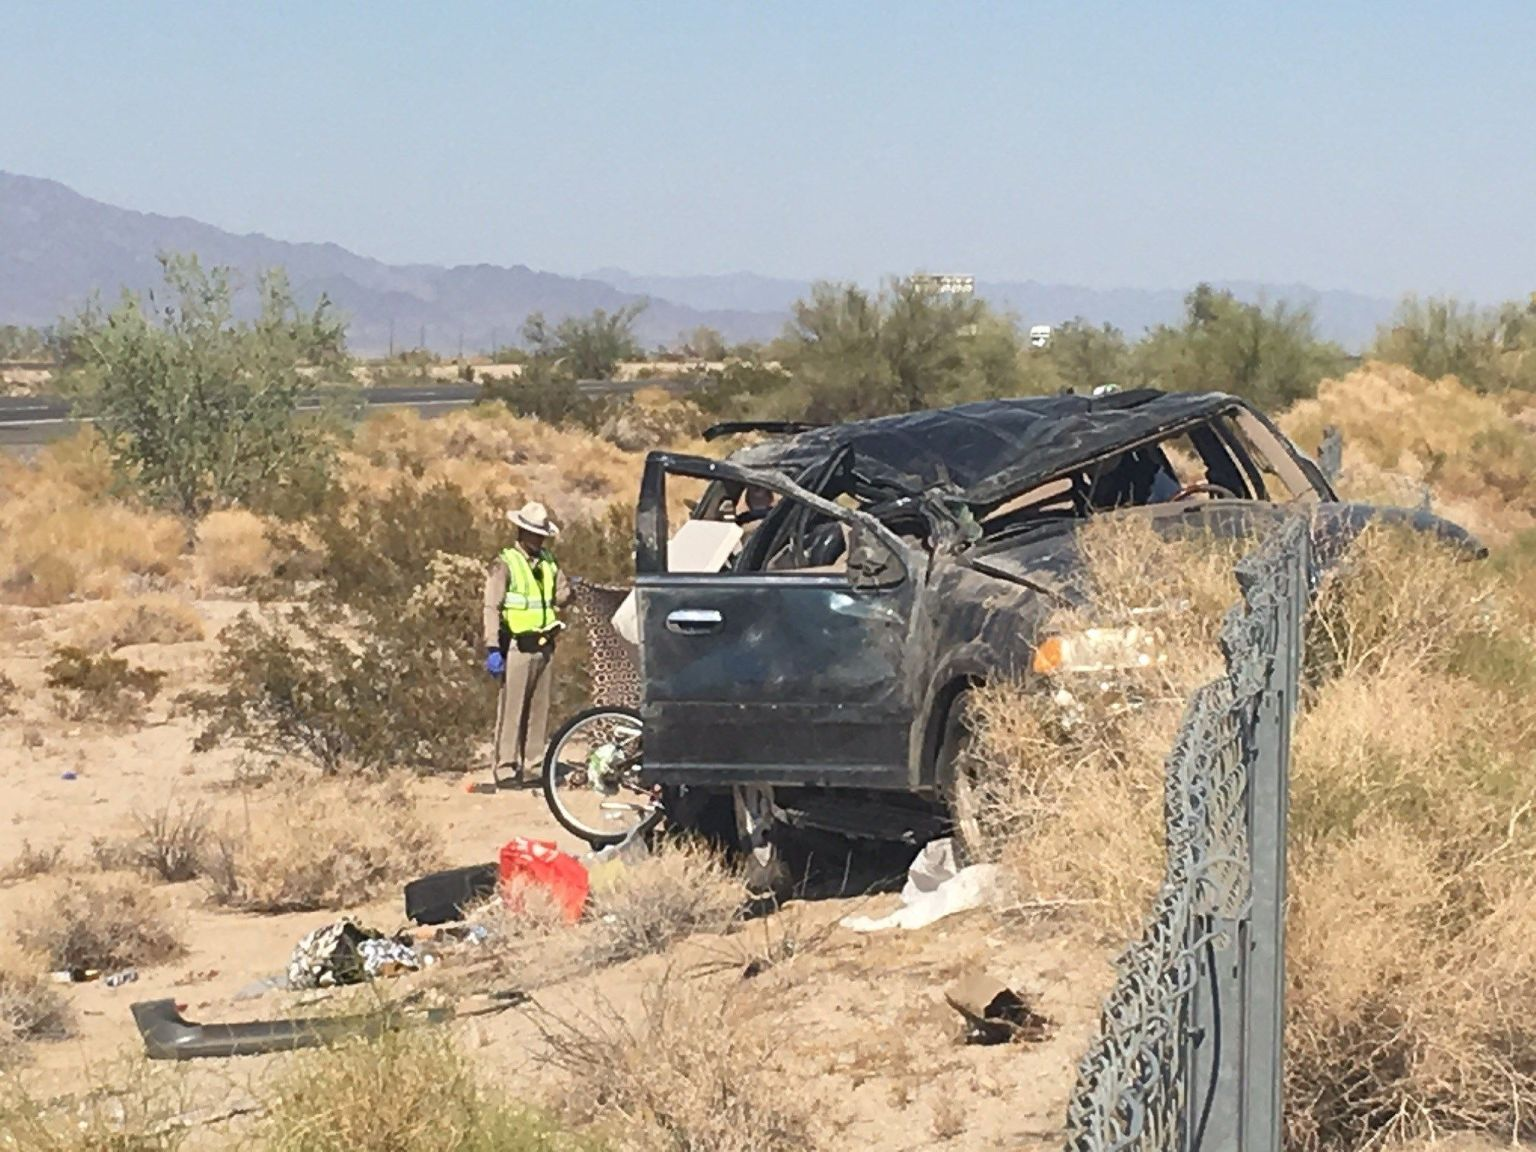 KMIR Exclusive: State Representative Taking Action on Deadly Highway